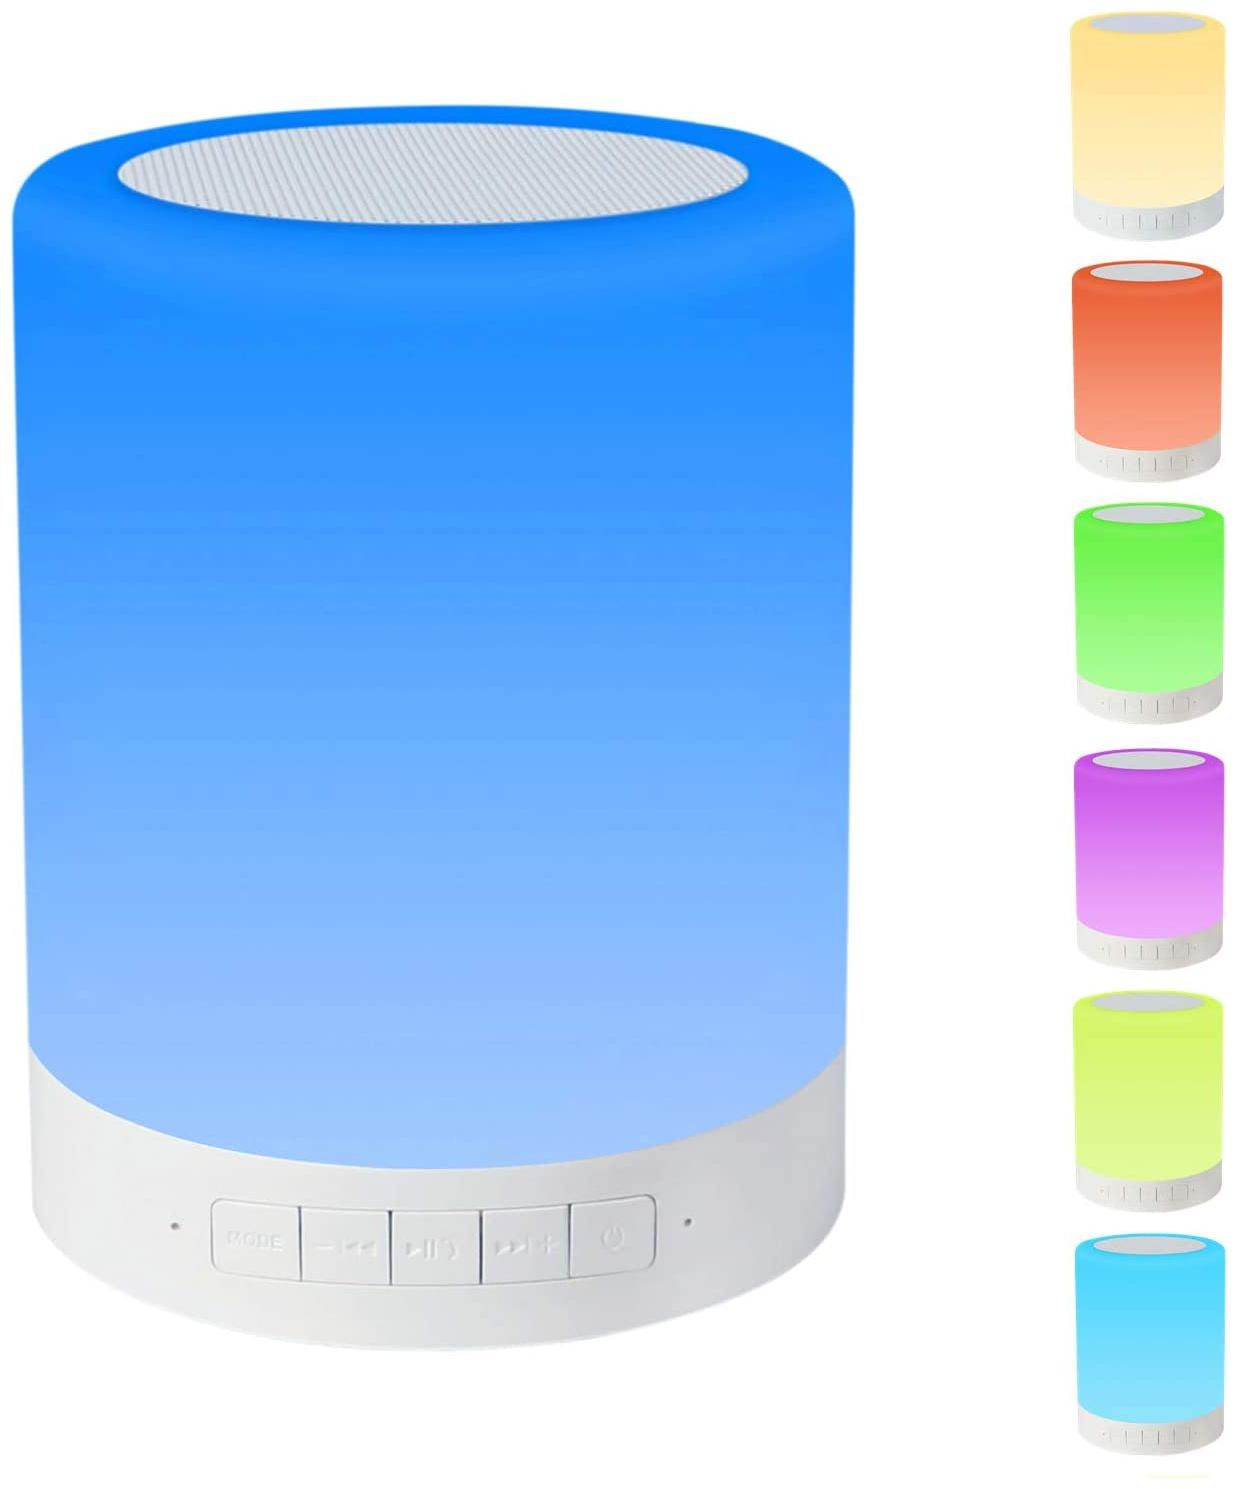 TSV Rechargeable Wireless Bluetooth Speaker and LED Night Light Special Launch Offer...